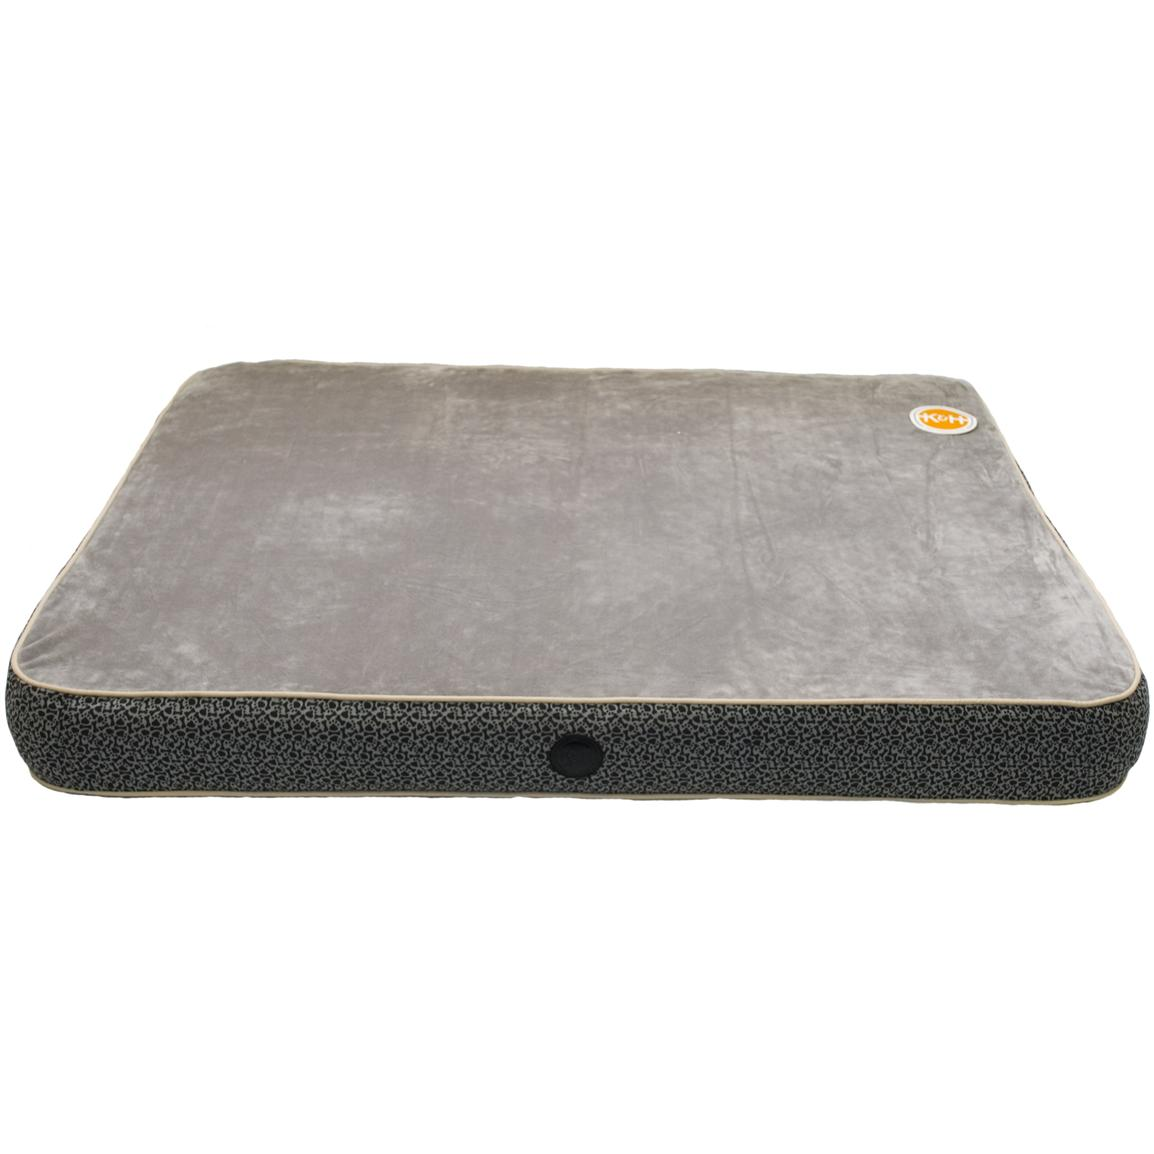 Superior Orthopedic Bed, Grey